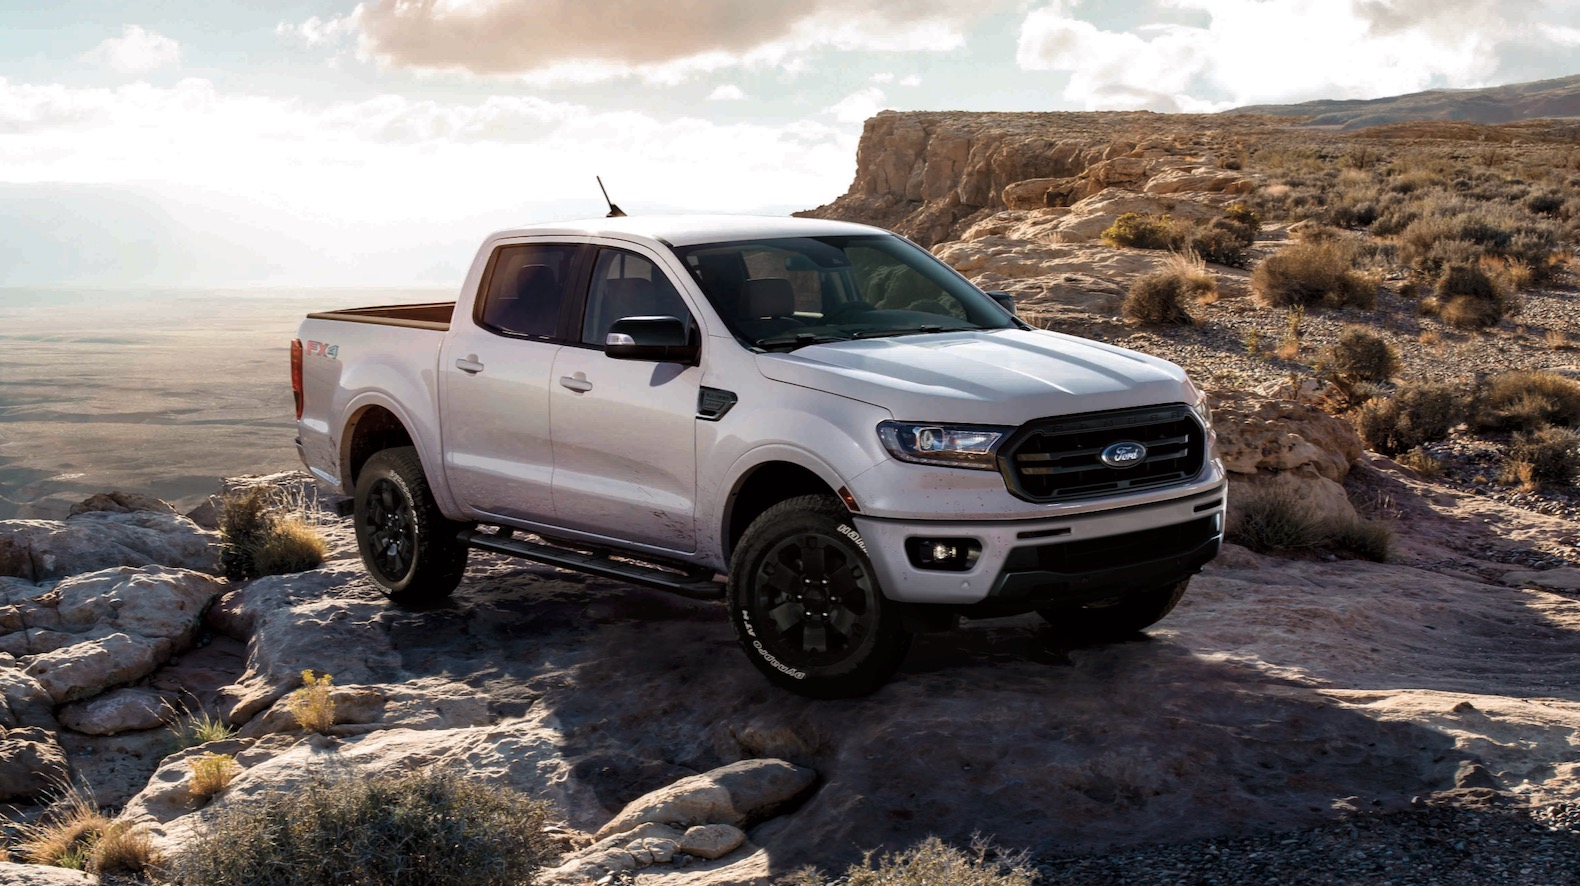 2019 Ford Ranger gets a Black Appearance package | The ...